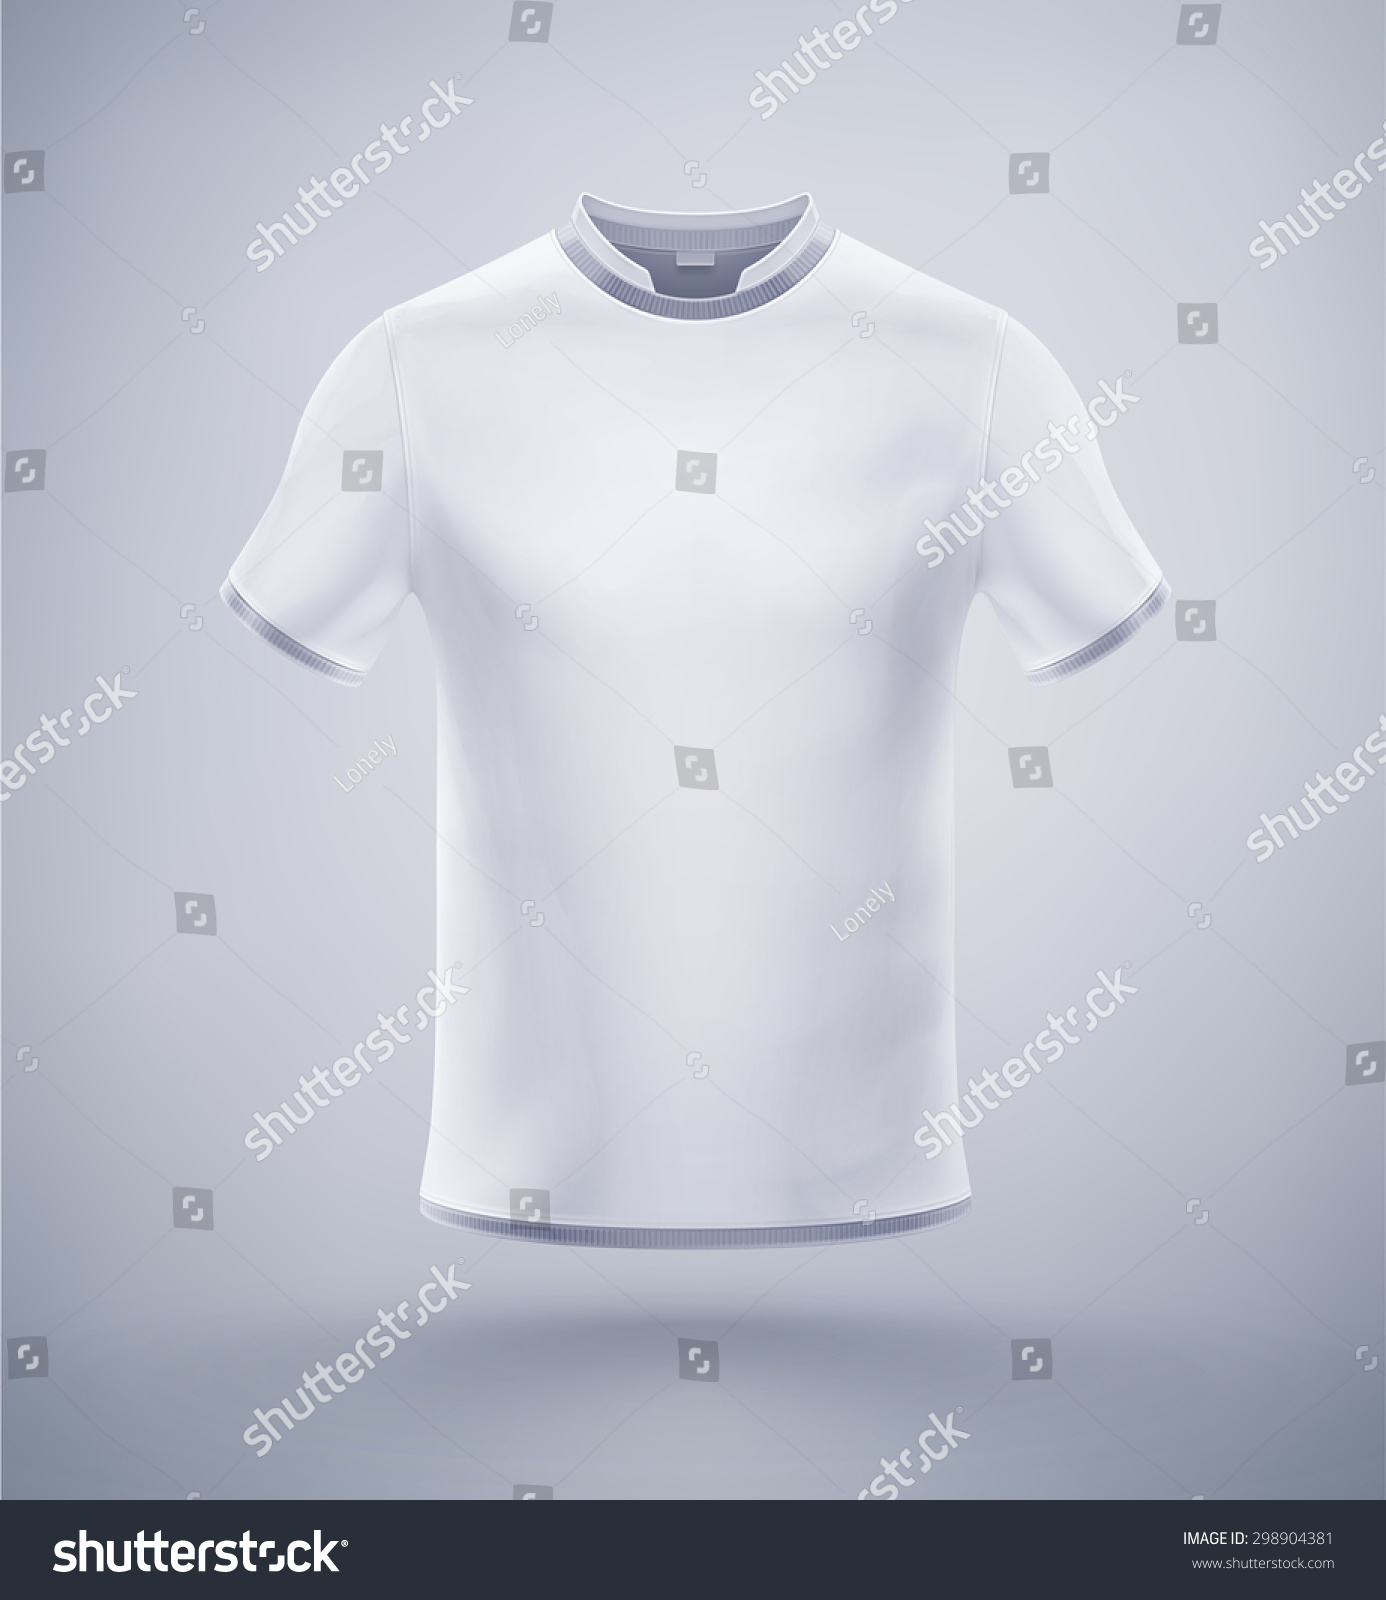 White t shirt eps - White Mens T Shirt Eps 10